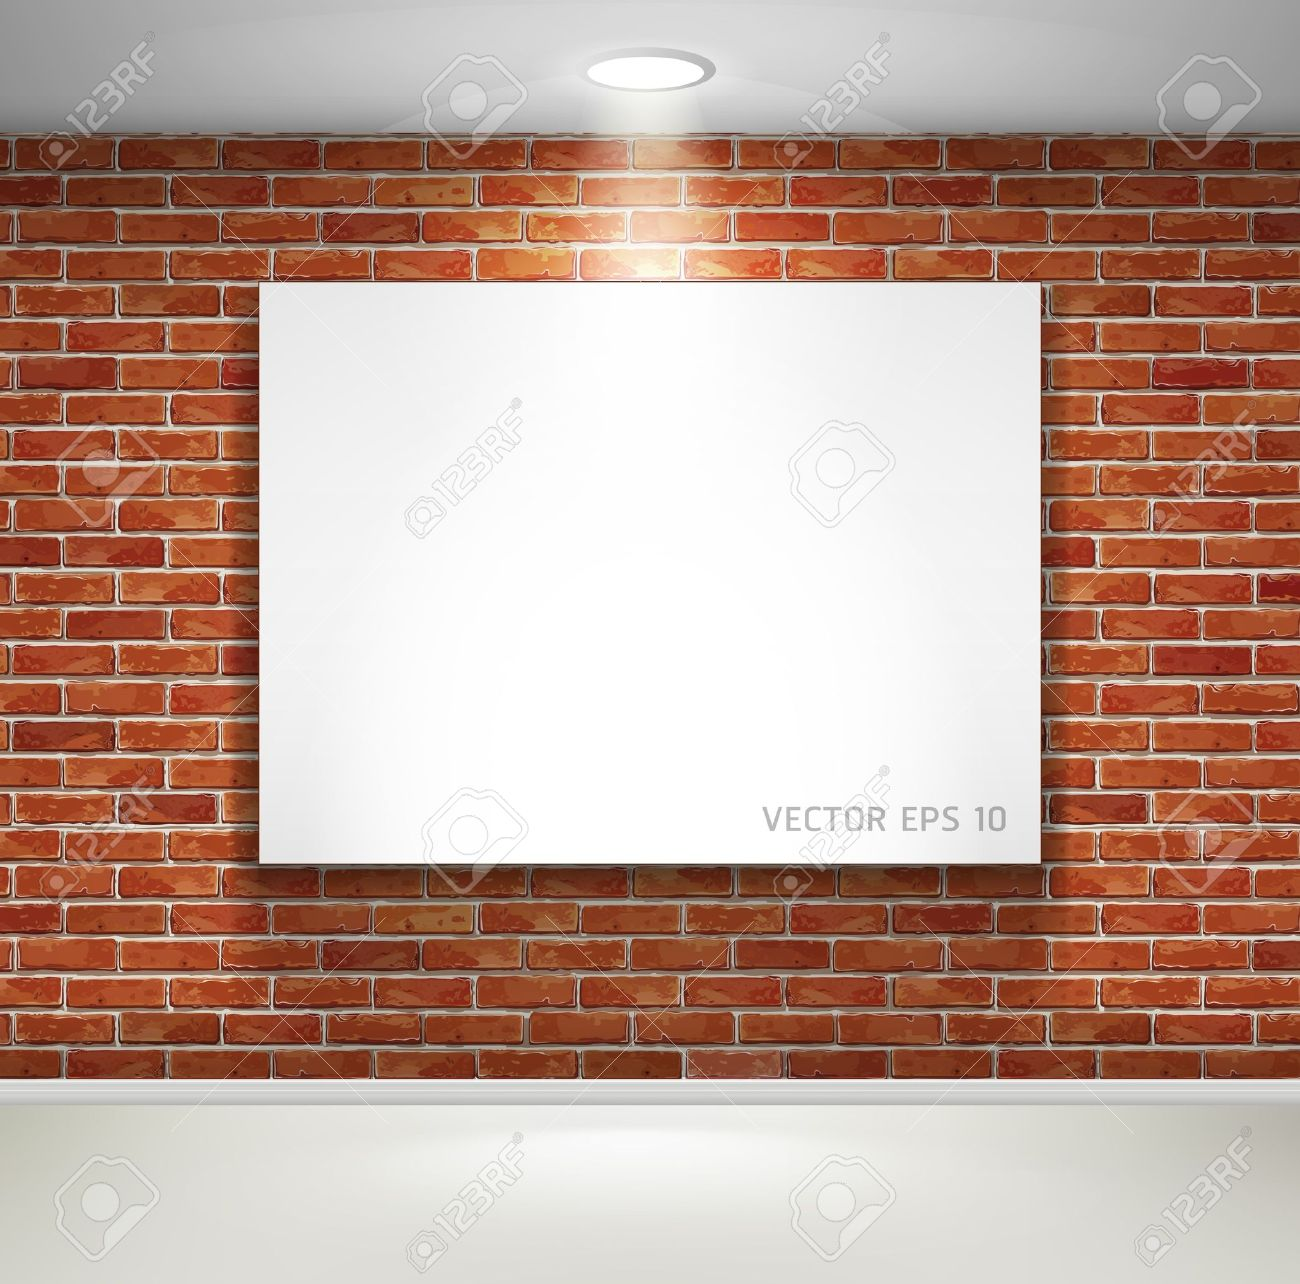 Gallery exhibition interior  Picture frames on brick wall  illustration Stock Vector - 16581218